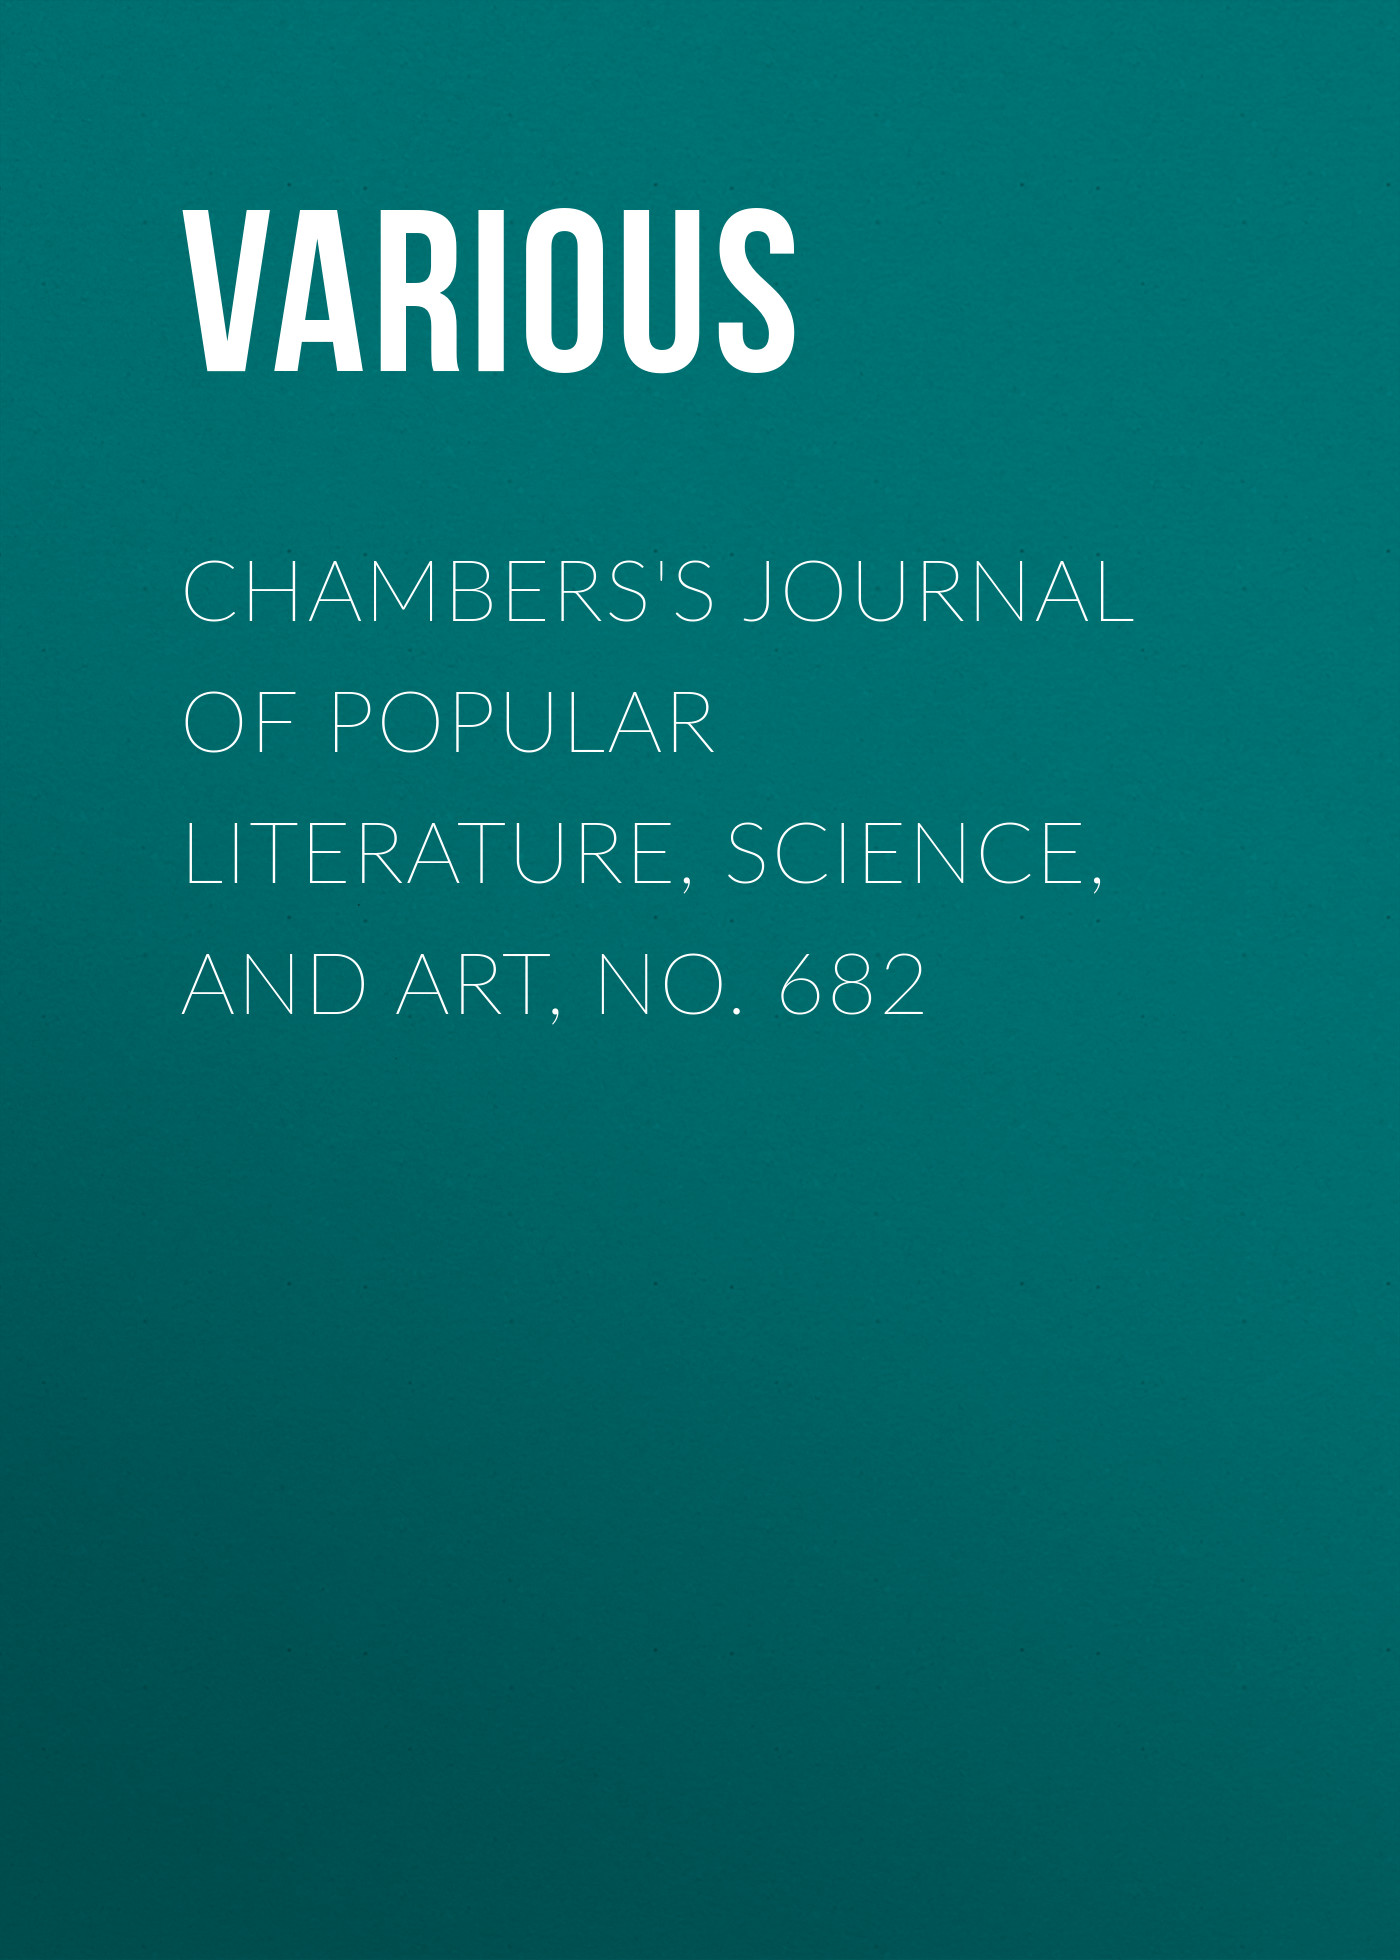 Various Chambers's Journal of Popular Literature, Science, and Art, No. 682 various chambers s journal of popular literature science and art no 699